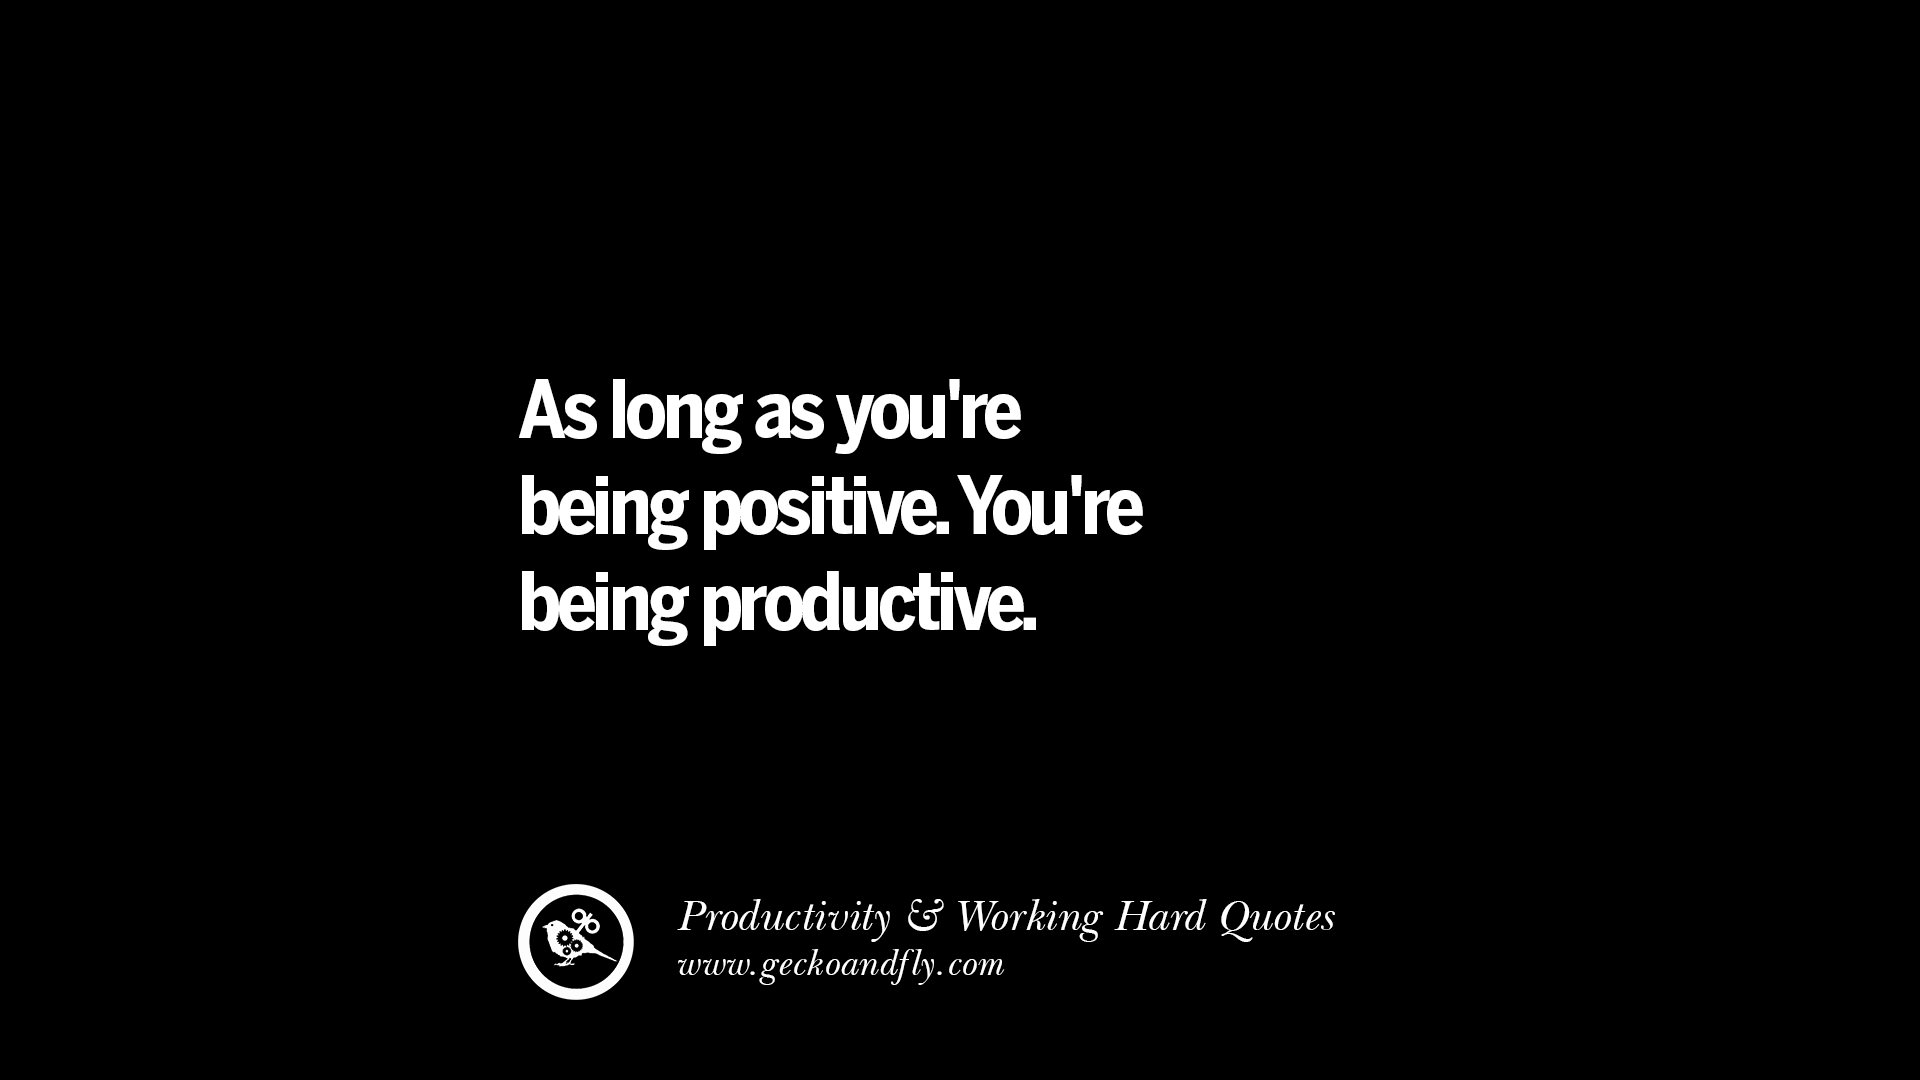 Wallpaper With Quotes Attitude 30 Uplifting Quotes On Increasing Productivity And Working